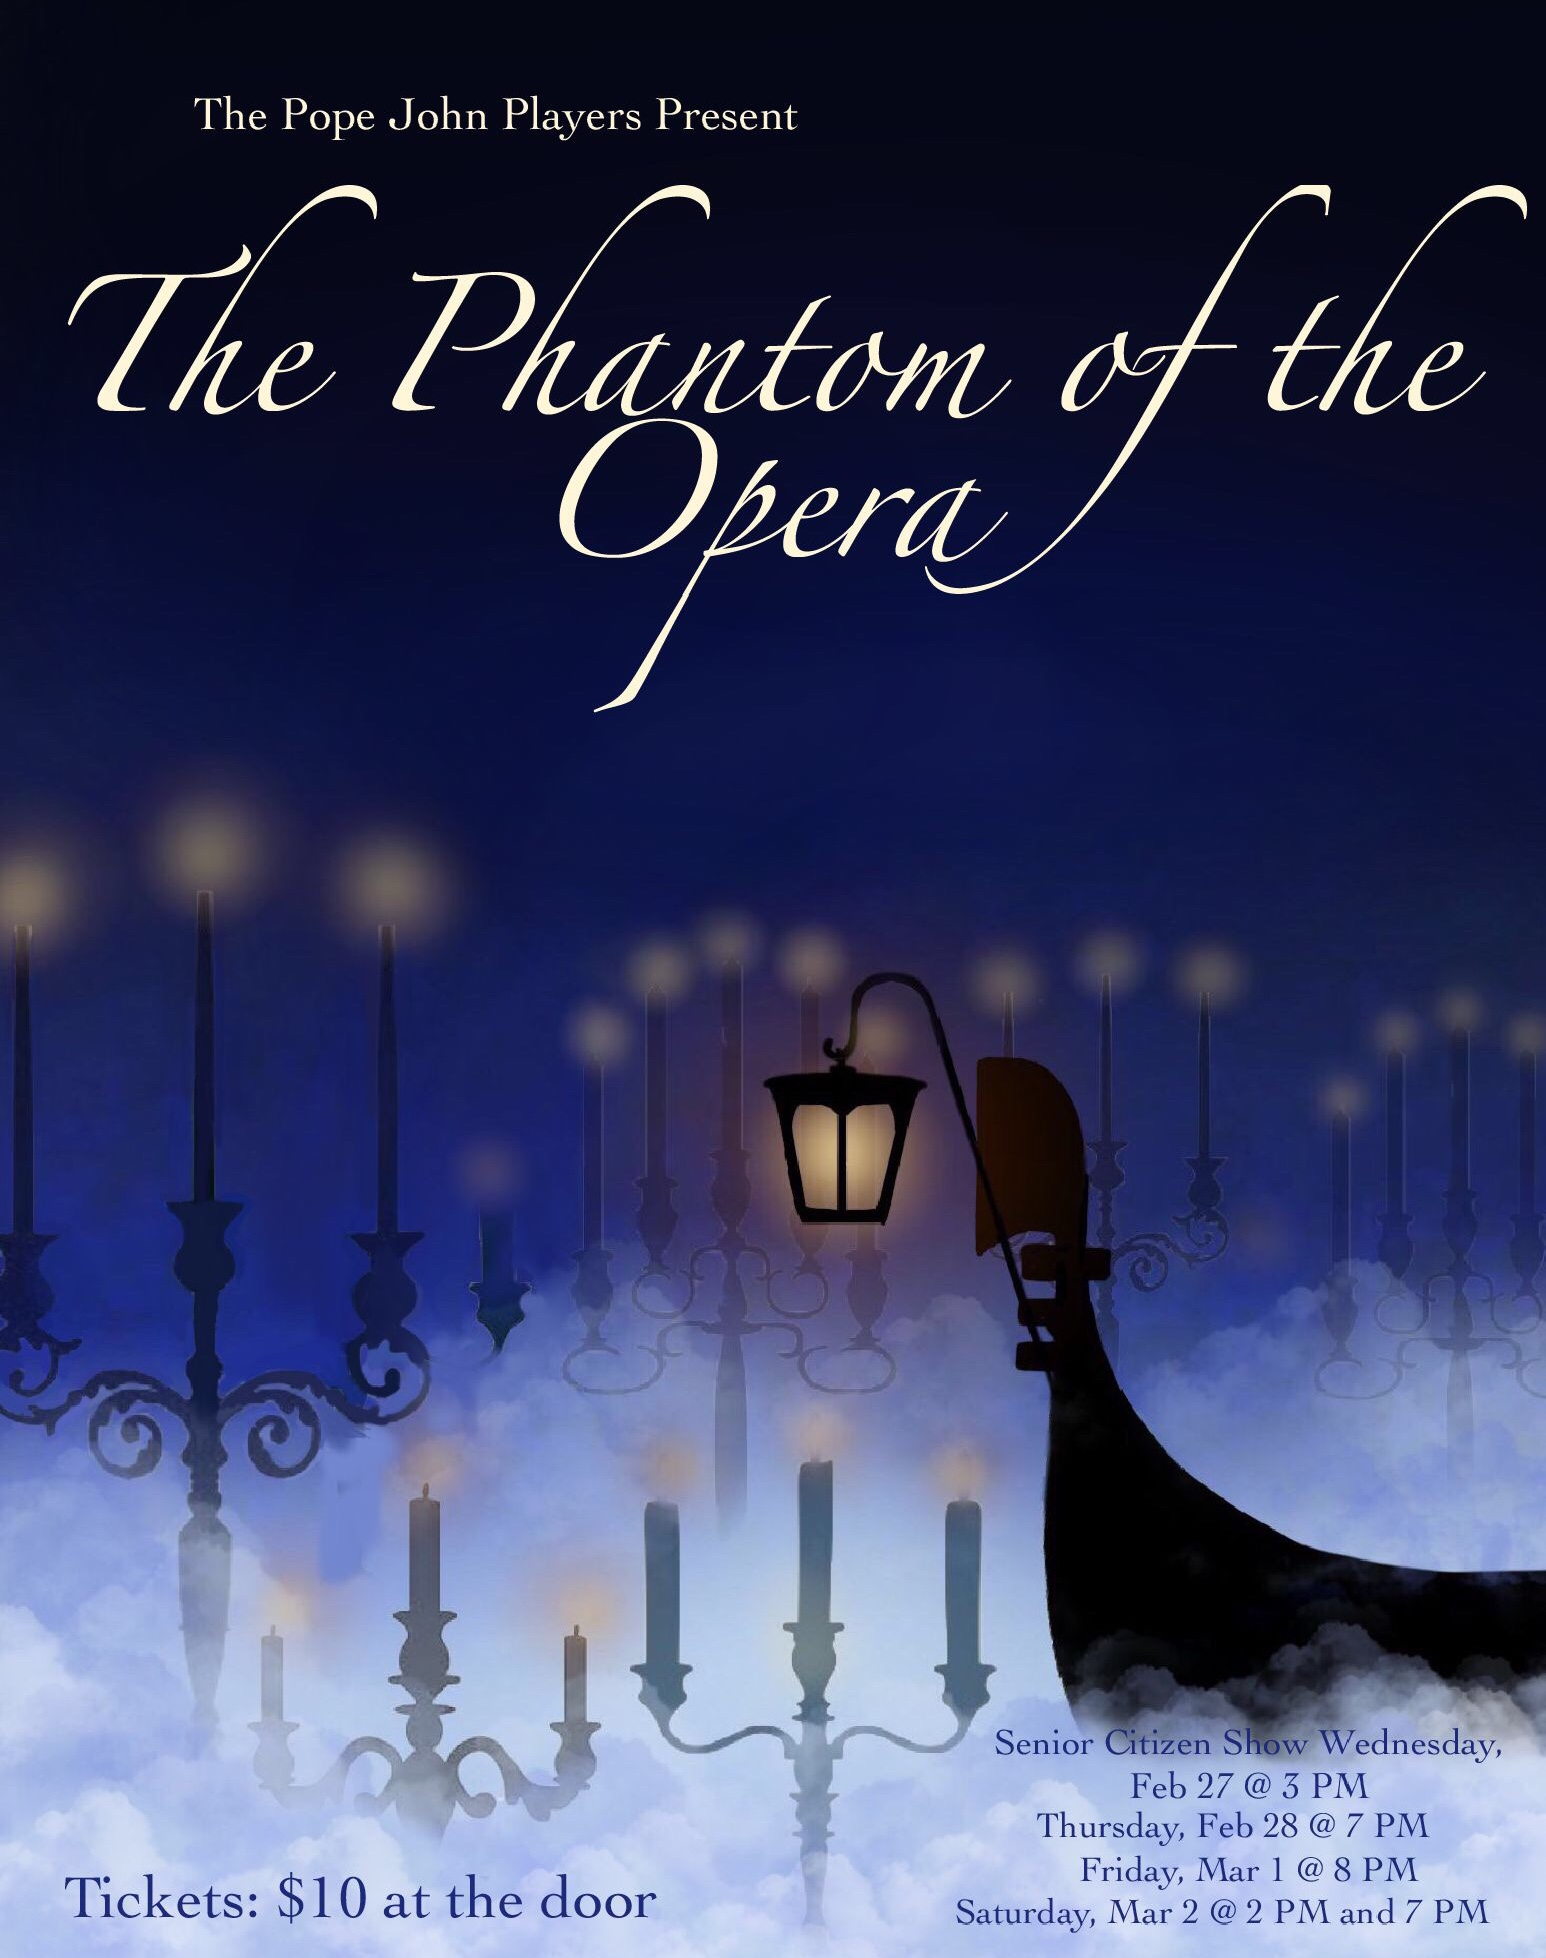 Wonderful musical theater at a great price!